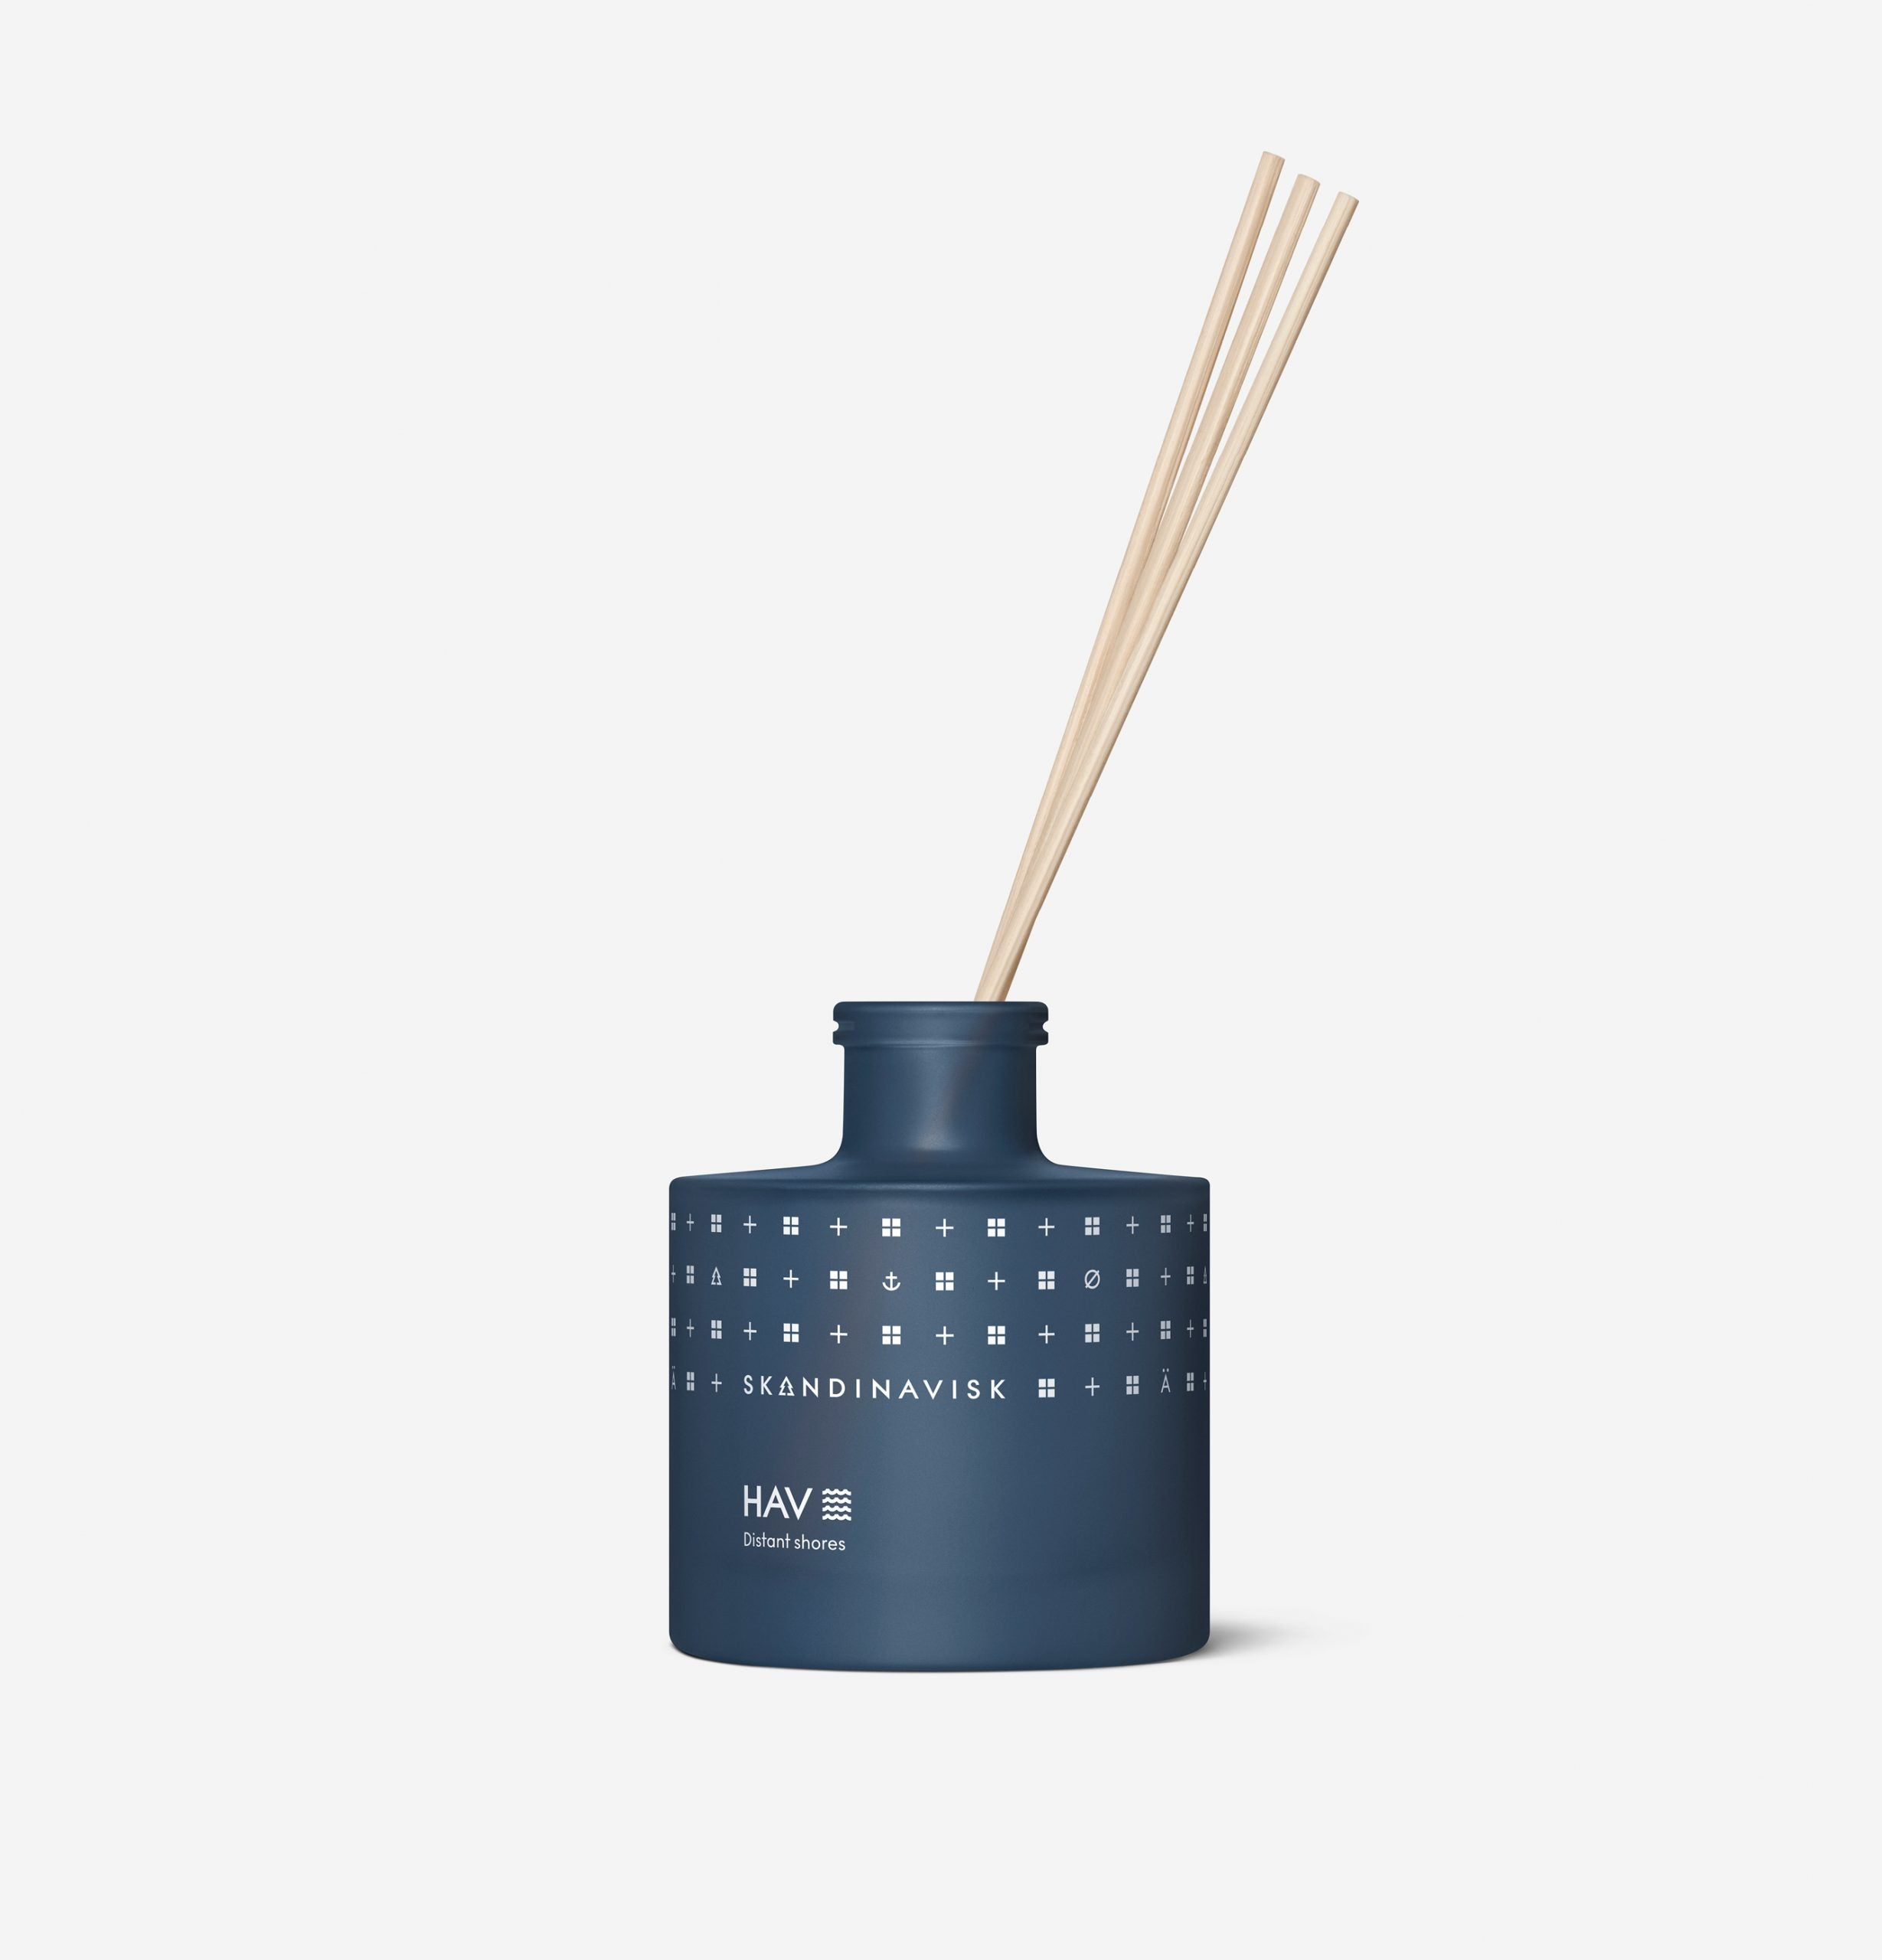 Hav (Distant Shores) Diffuser